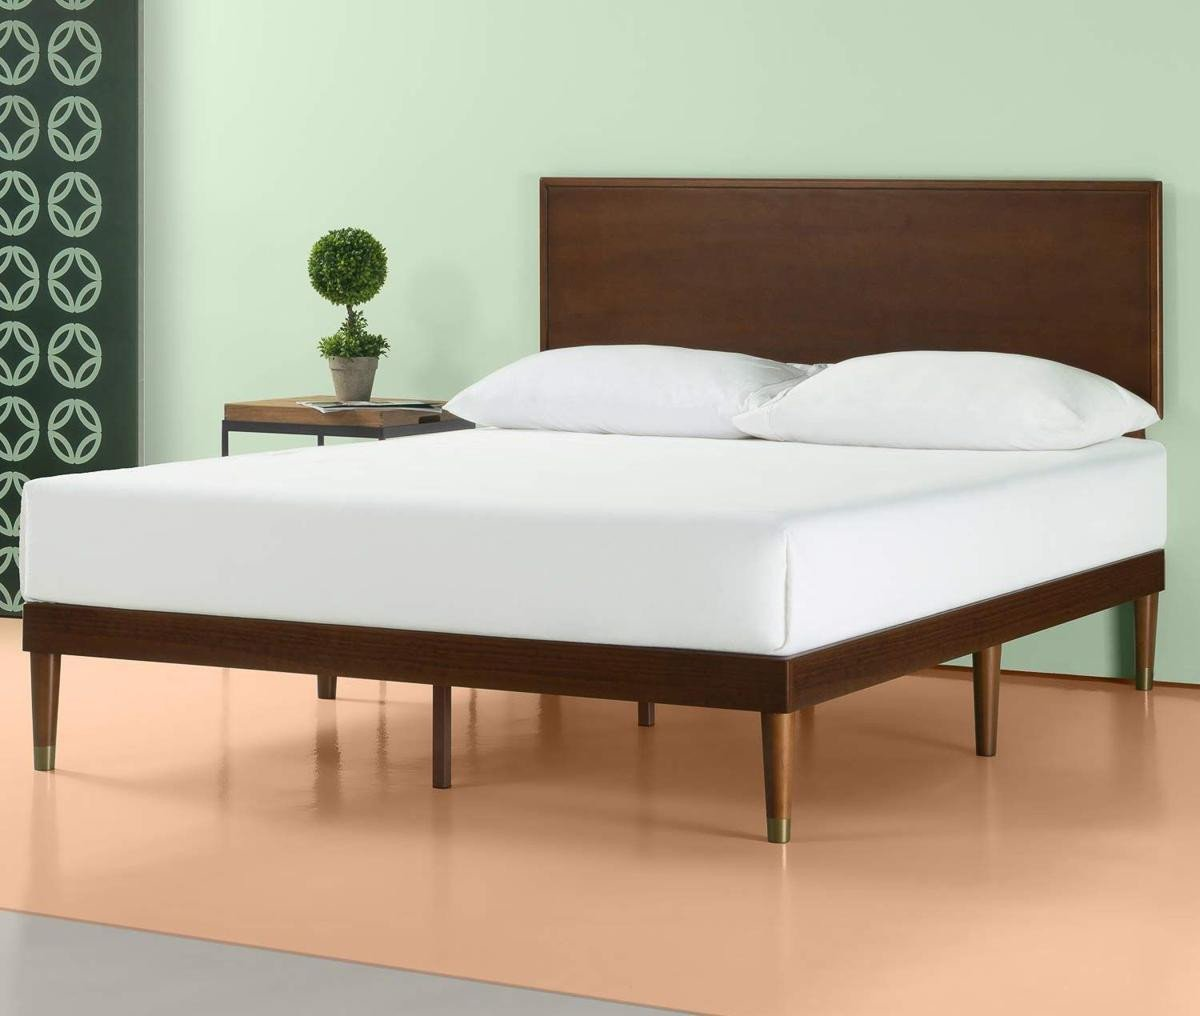 Tv Height In Bedroom Luxury Get A West Elm Look for Under $300 with This Mid Century Bed